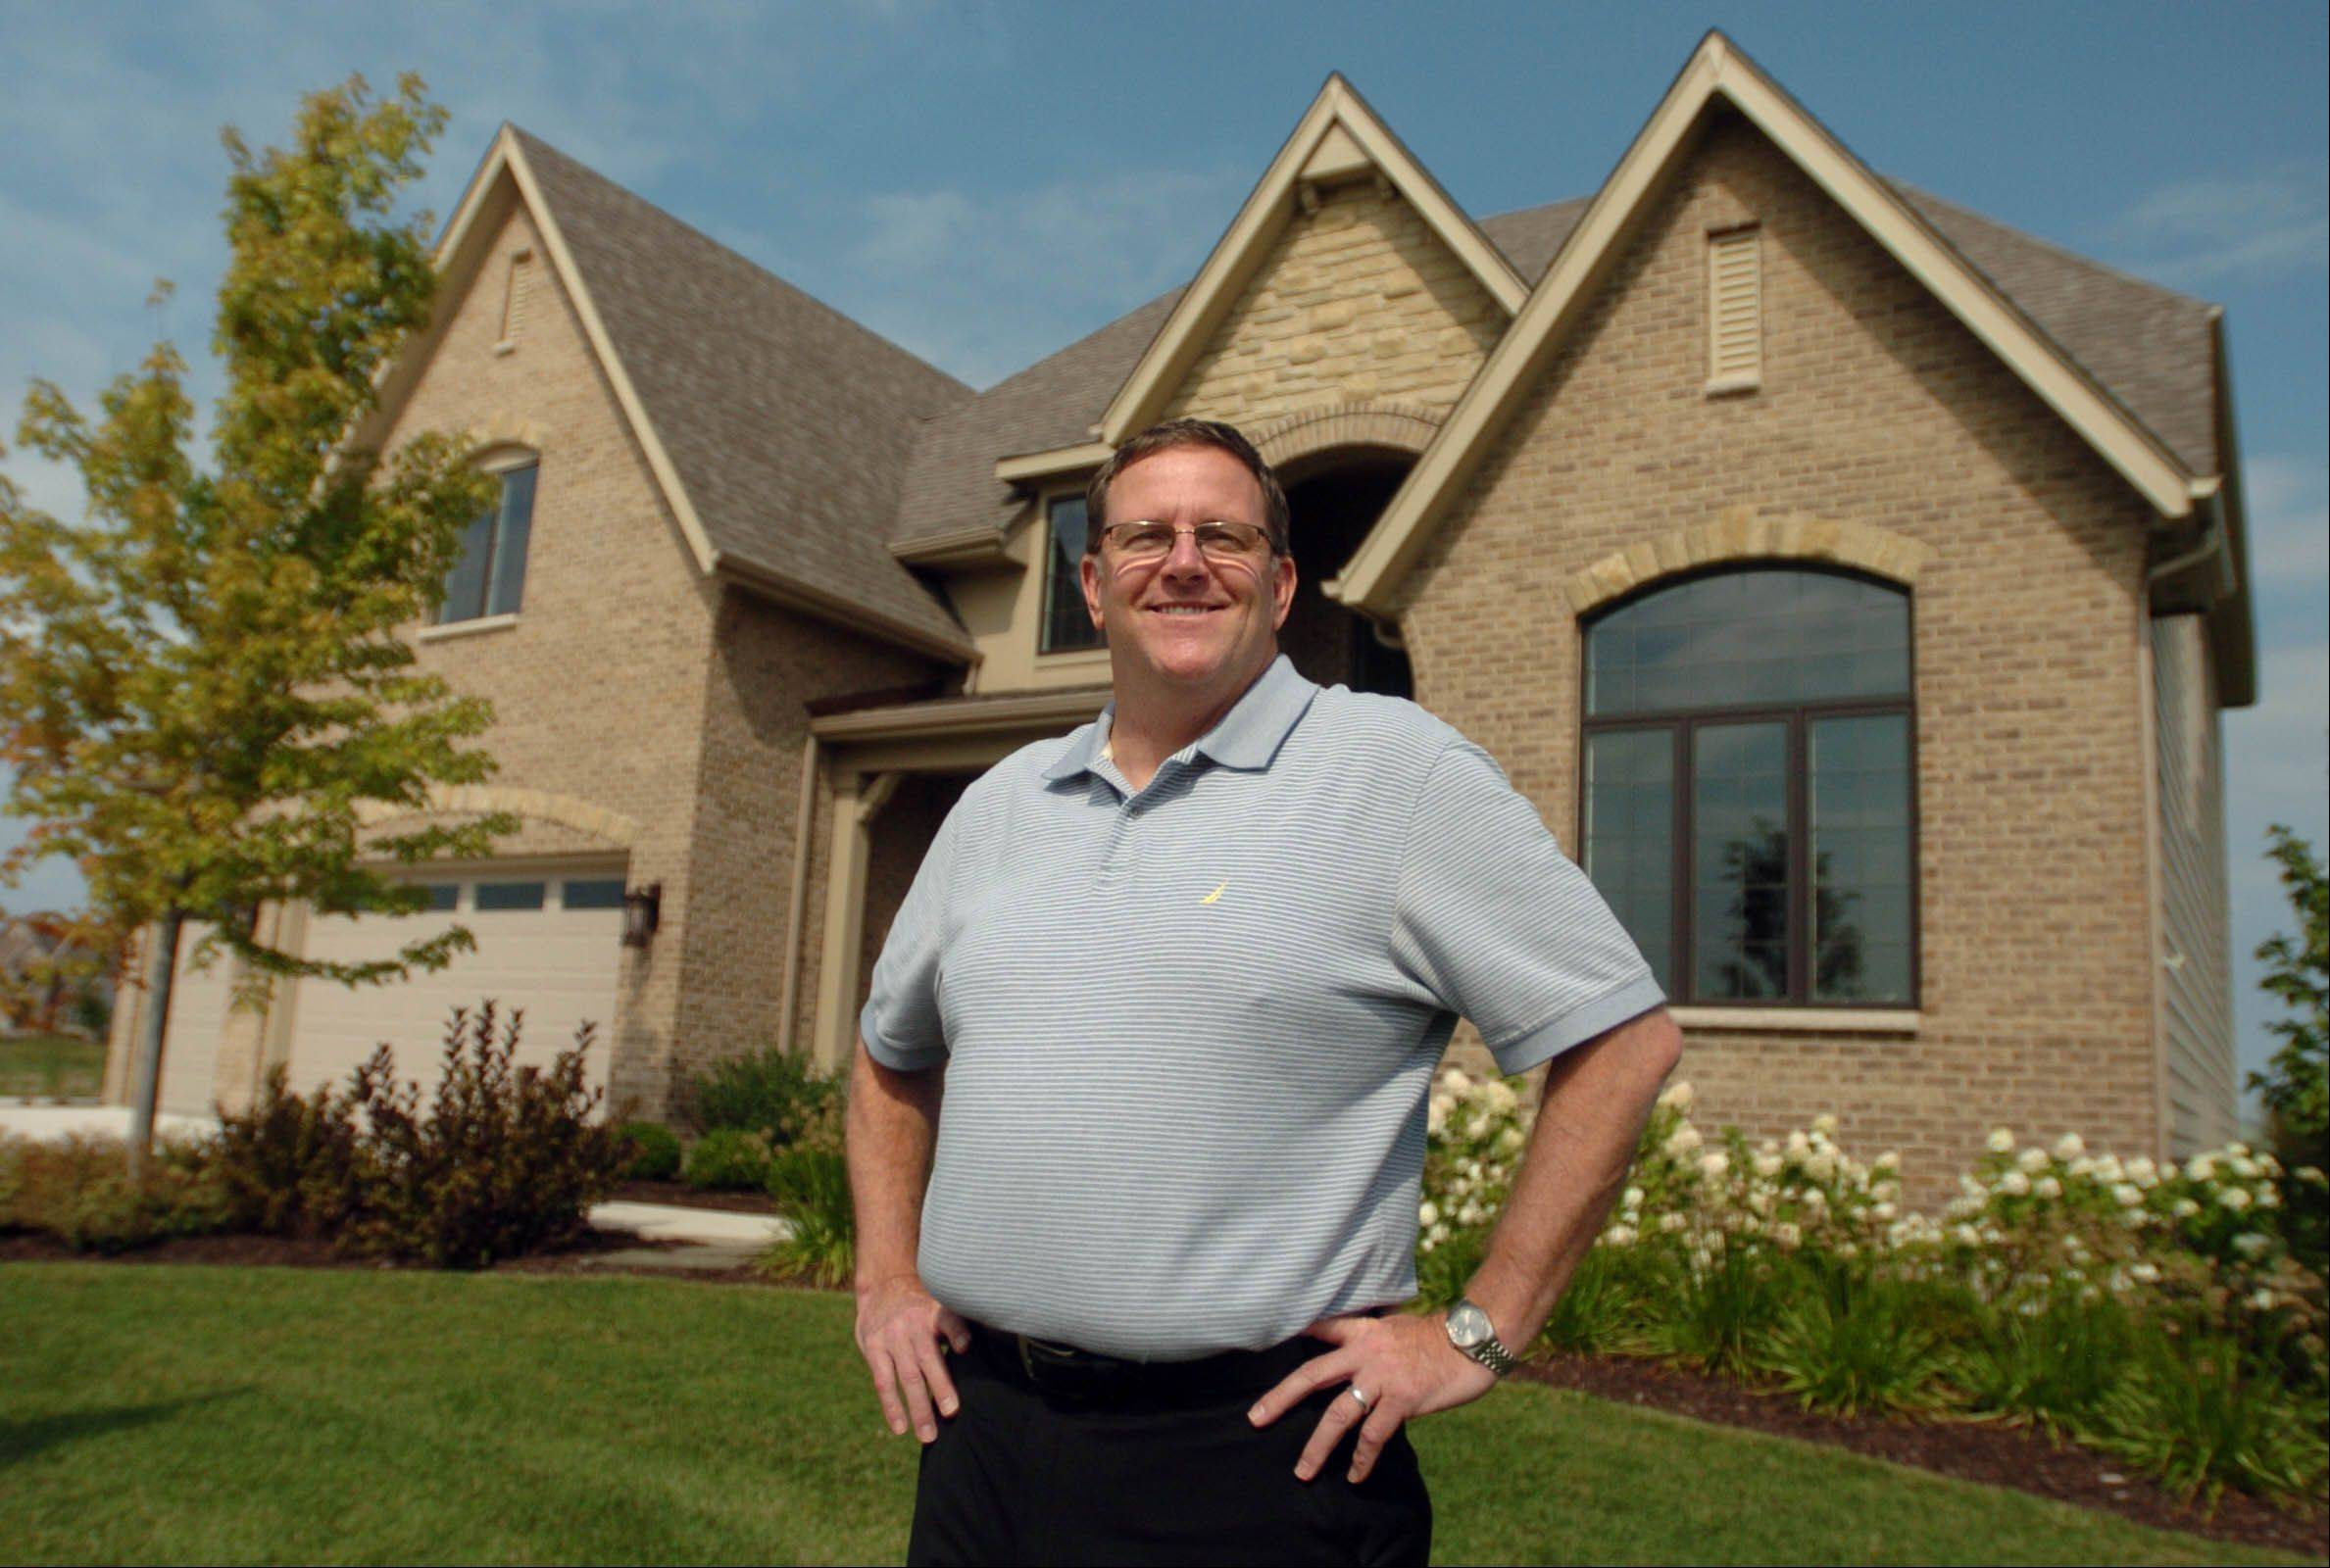 Peter Stefani, owner and president of King's Court Builders in Naperville, focuses on constructing custom homes.